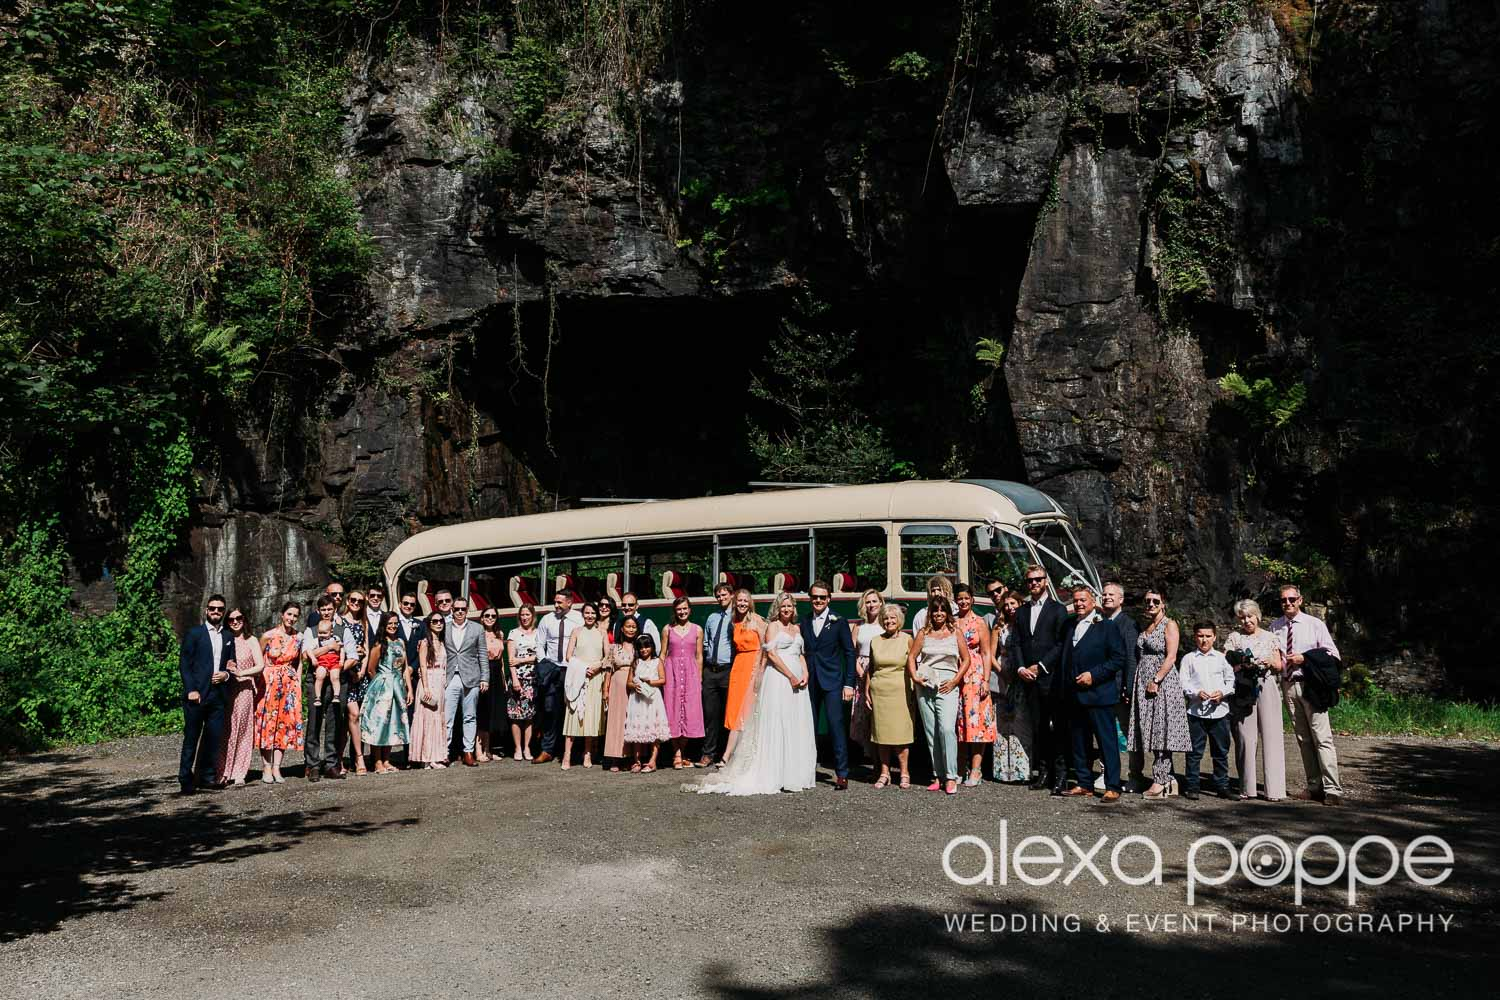 VA_wedding_edenproject_carnglaze_46.jpg